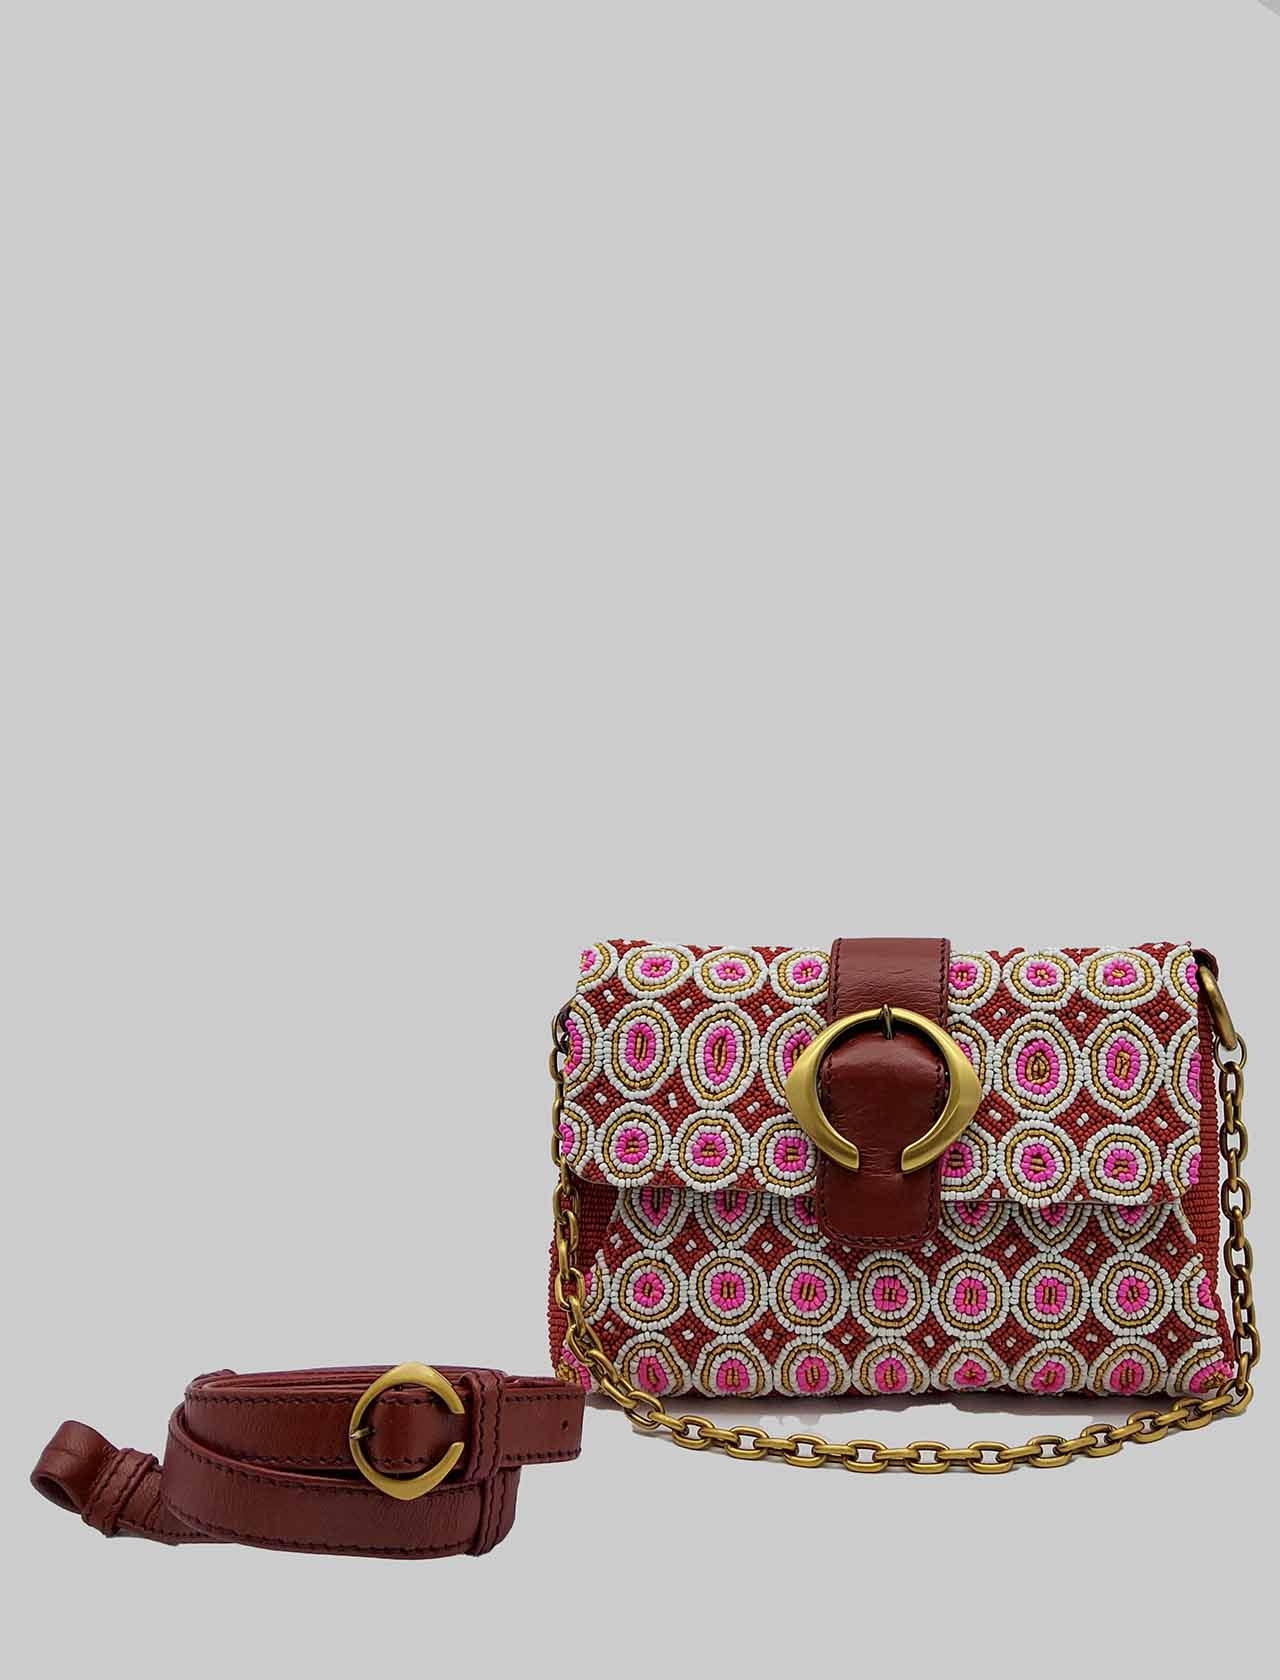 Women's Small Shoulder Bag Tribal Dance in Leather and Pink and Gold Beads with Chain and Adjustable and Removable Leather Shoulder Strap Maliparmi | Bags and backpacks | BD006490791B3221